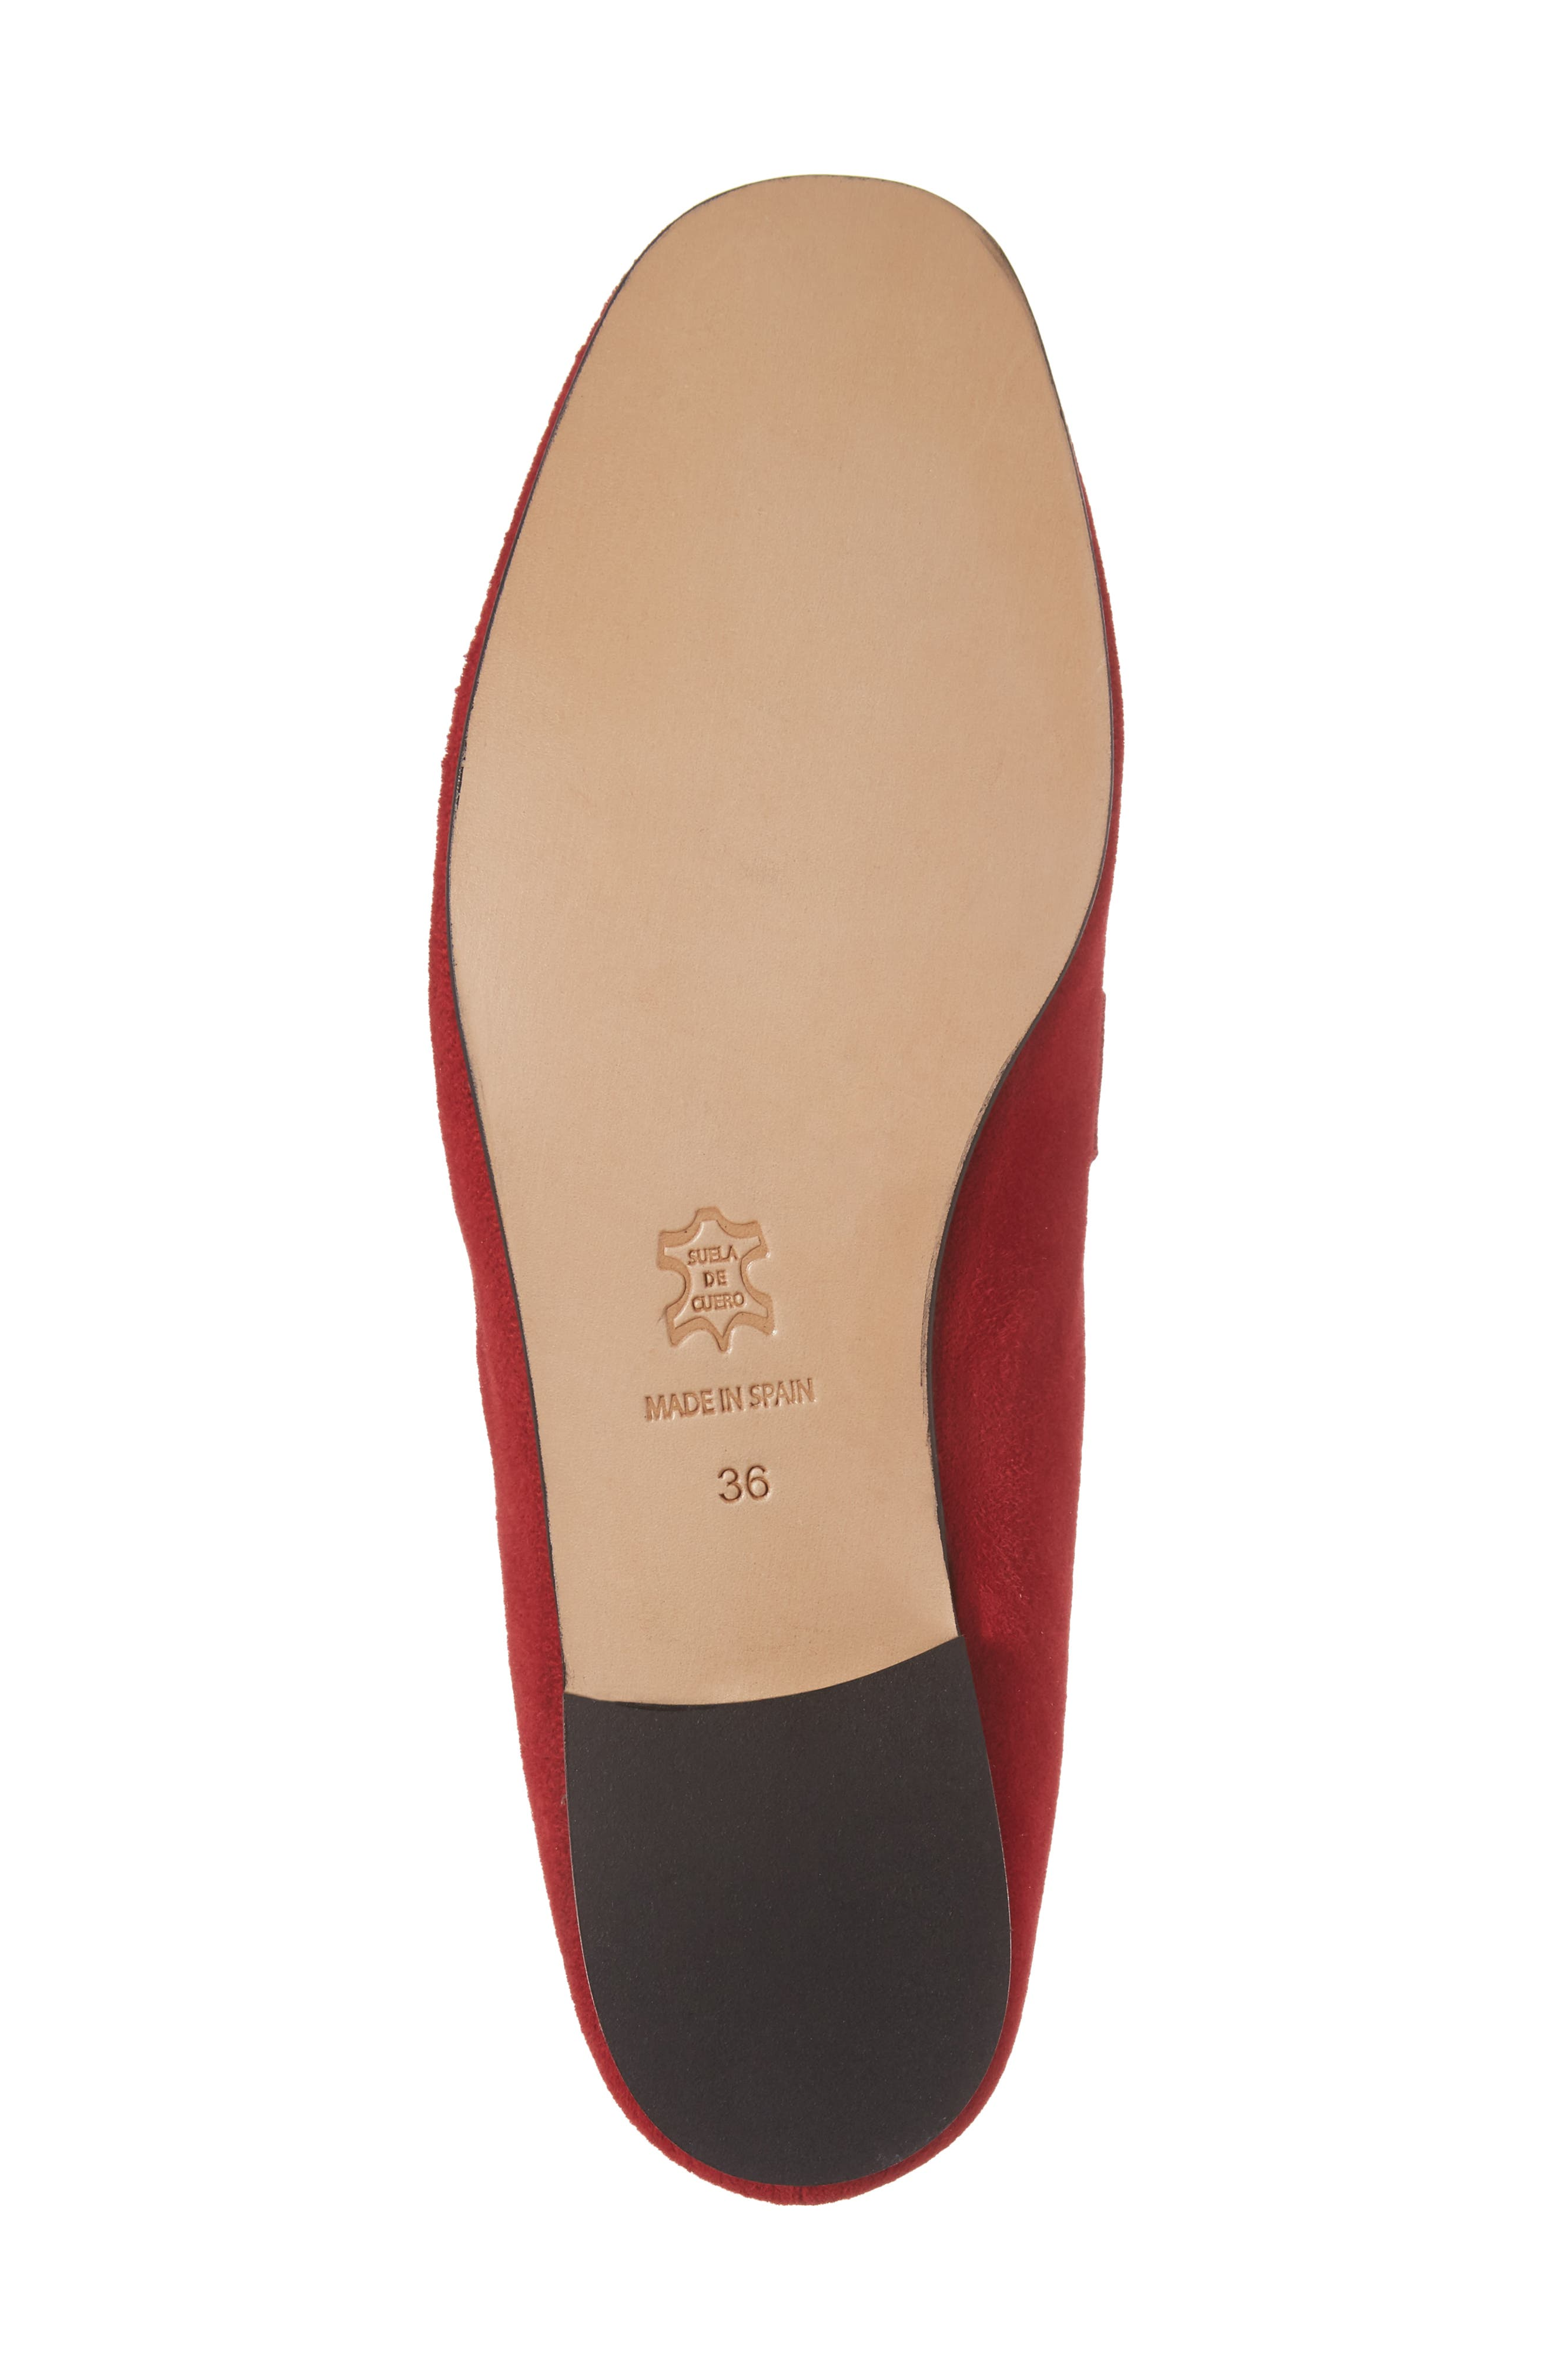 Sorrento Loafer Mule,                             Alternate thumbnail 6, color,                             RED SUEDE